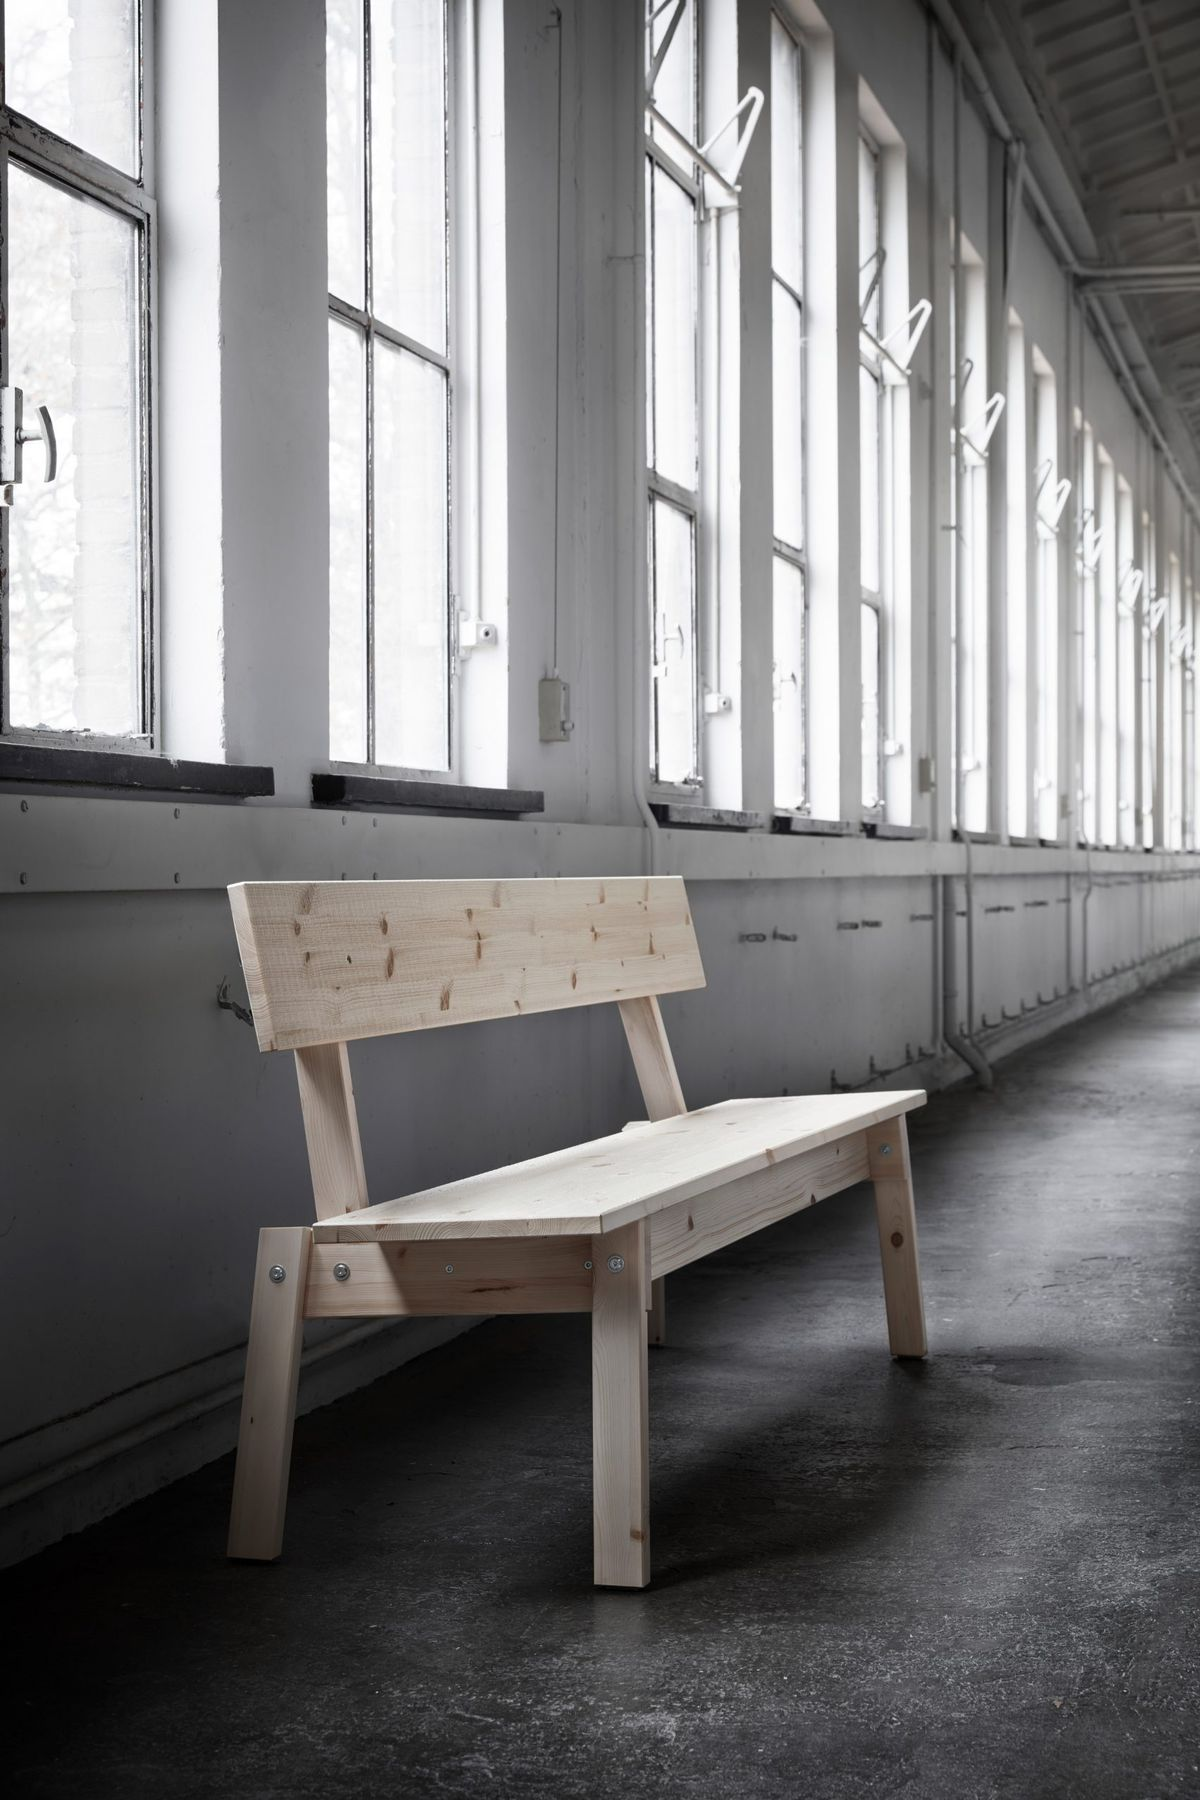 New Ikea collab goes for industrial, DIY look - Curbed